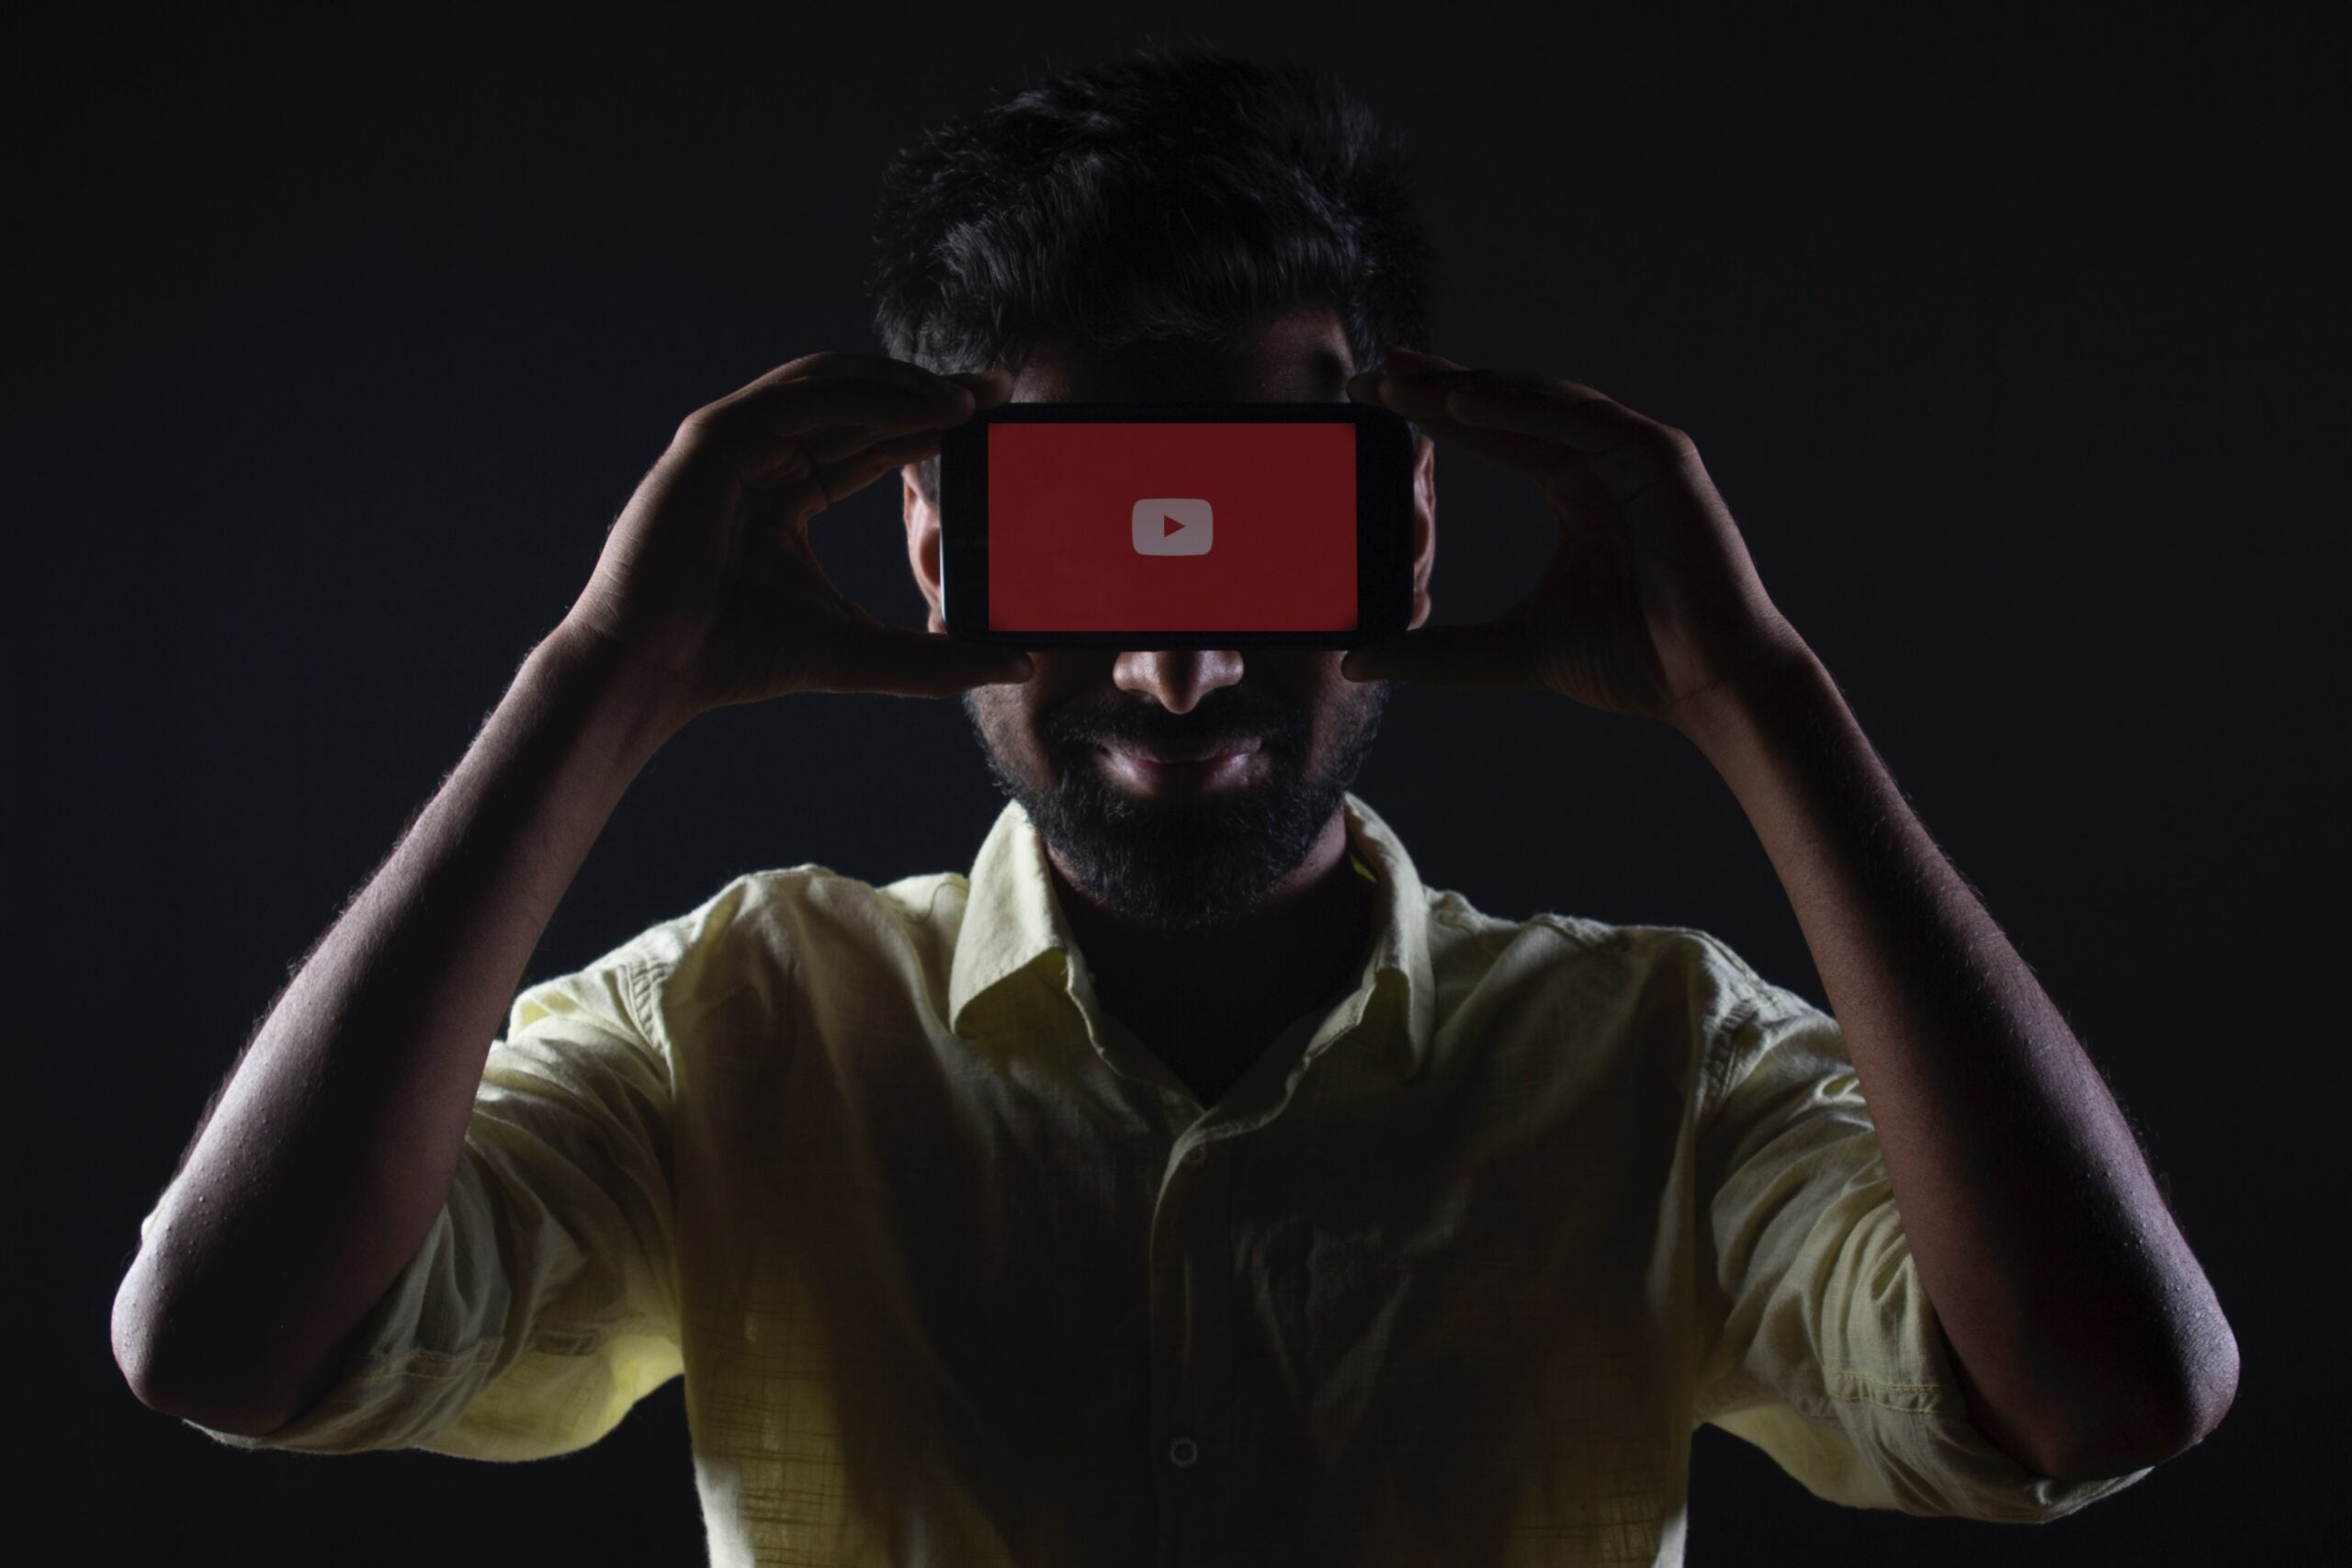 A man holds a smartphone with the YouTube app.